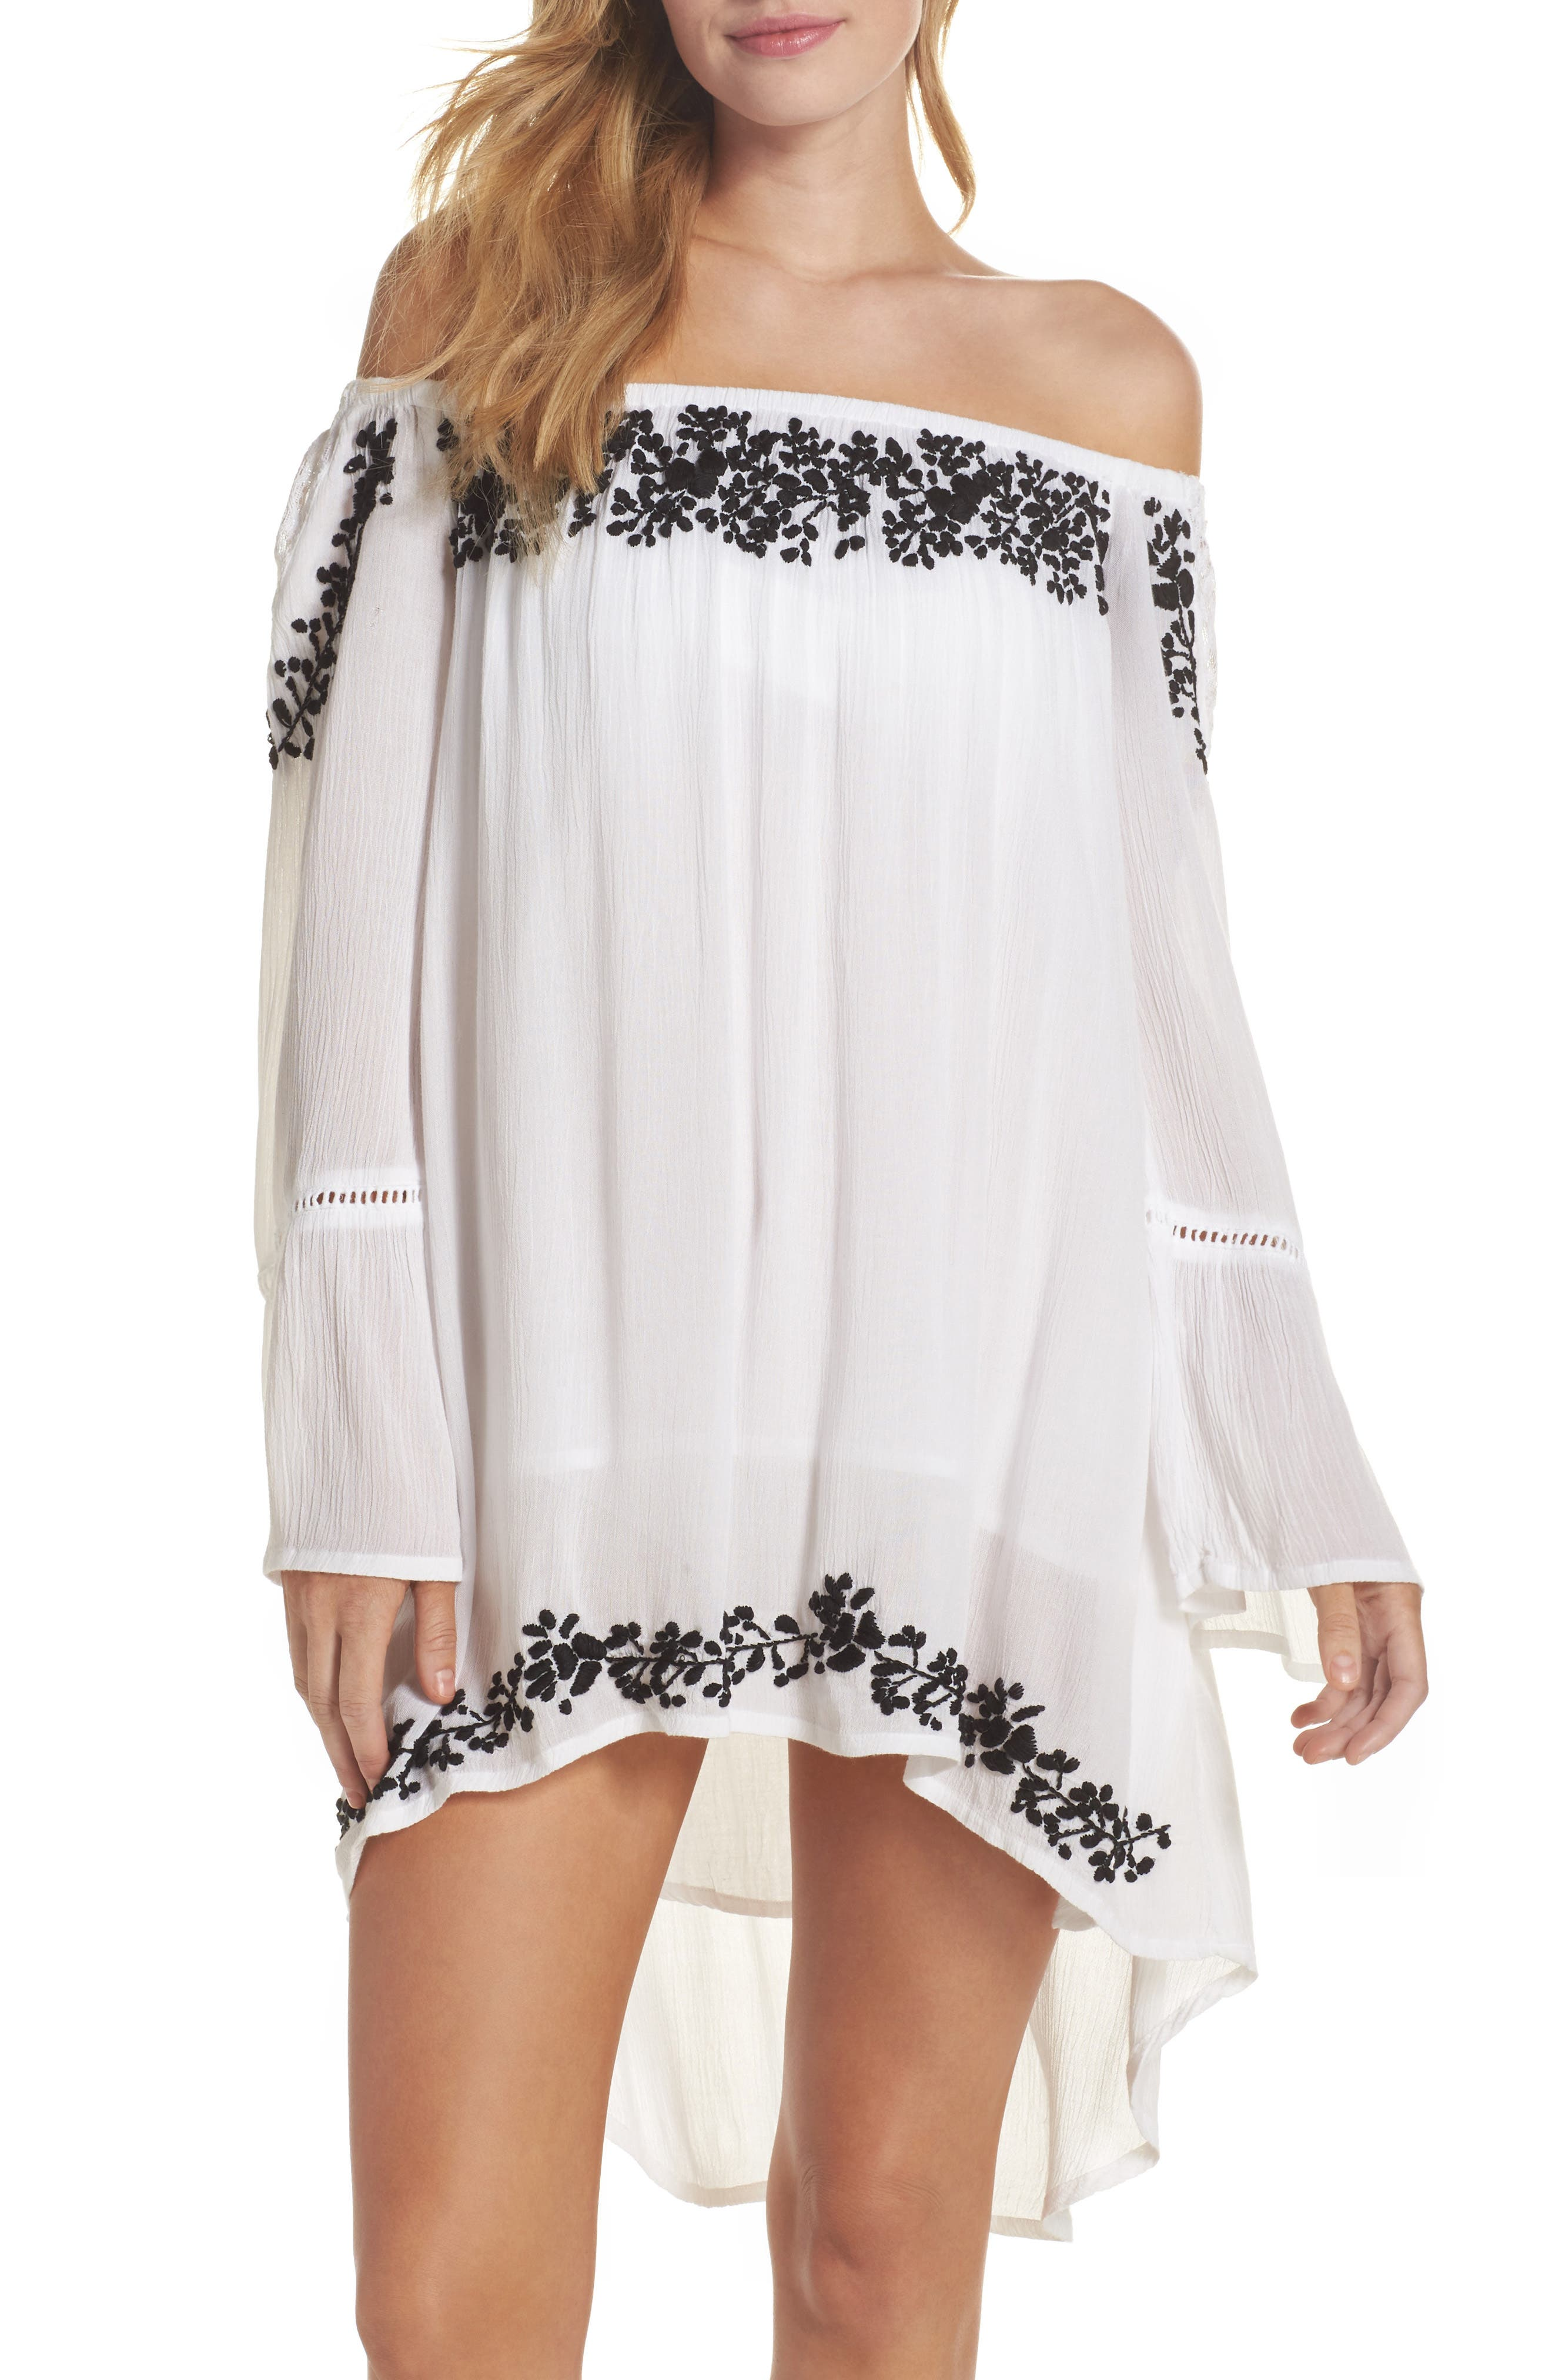 Cleopatra Off the Shoulder Cover-Up Dress,                             Main thumbnail 1, color,                             111